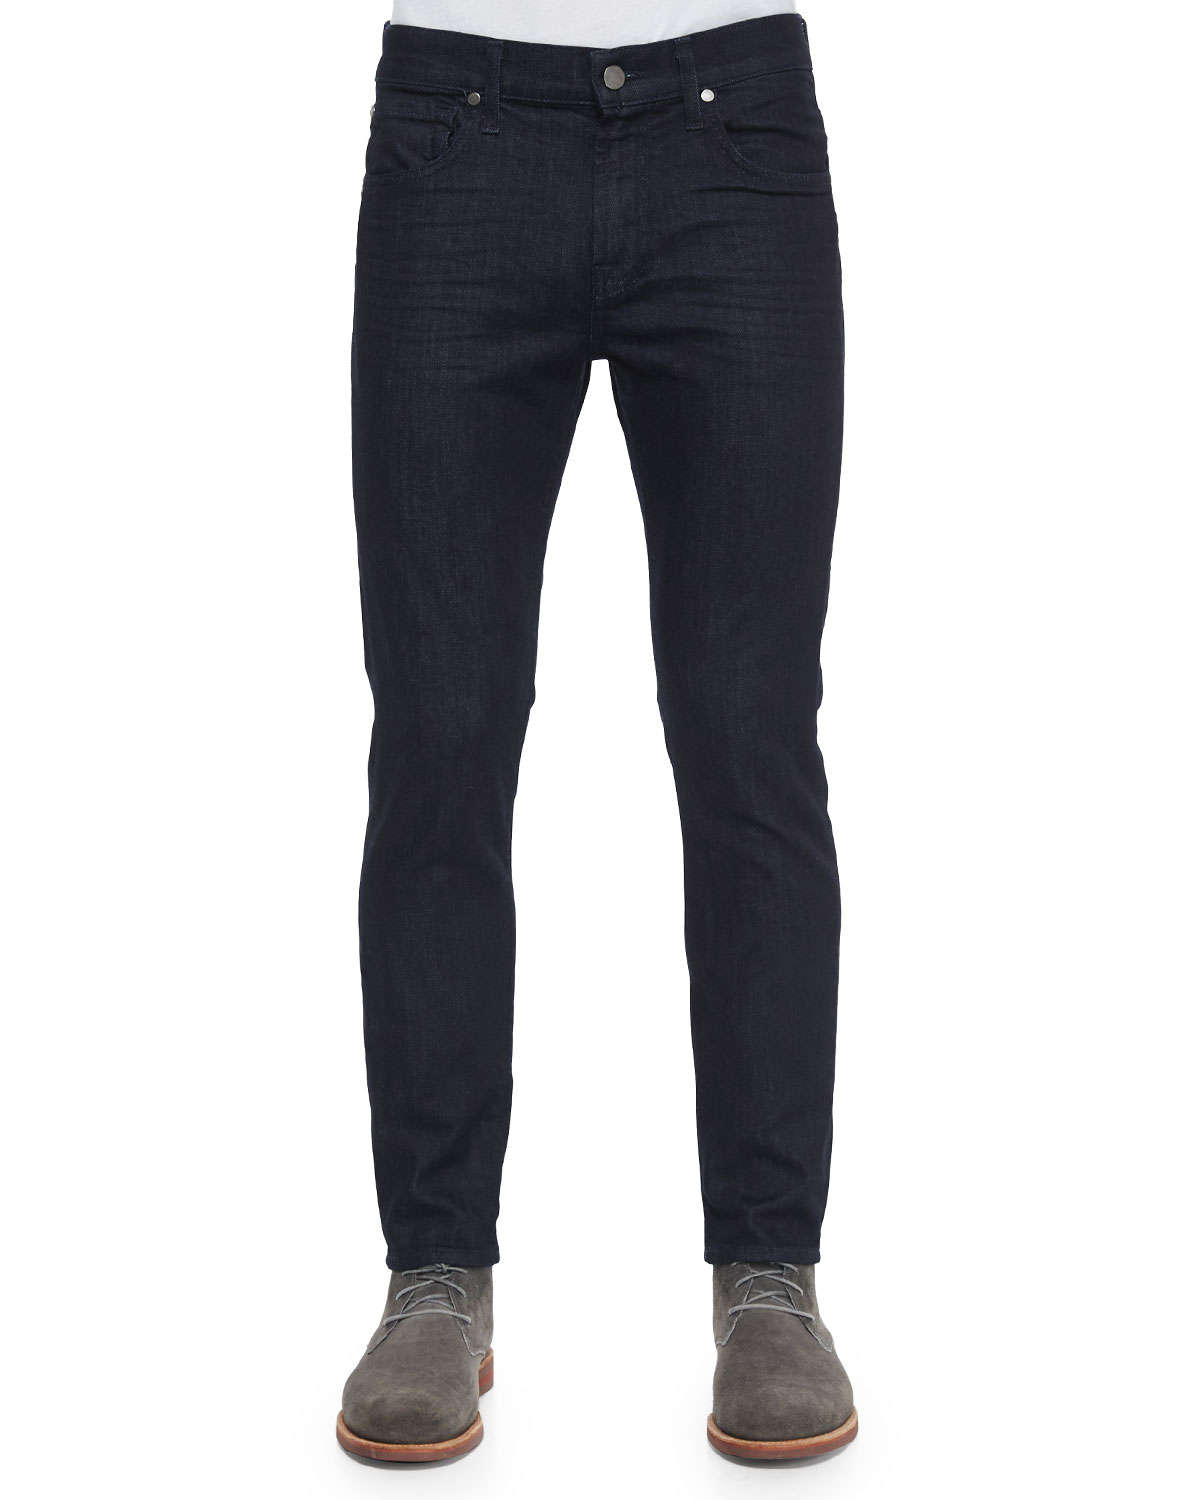 7 for all mankind paxtyn deep wells denim jeans in blue. Black Bedroom Furniture Sets. Home Design Ideas